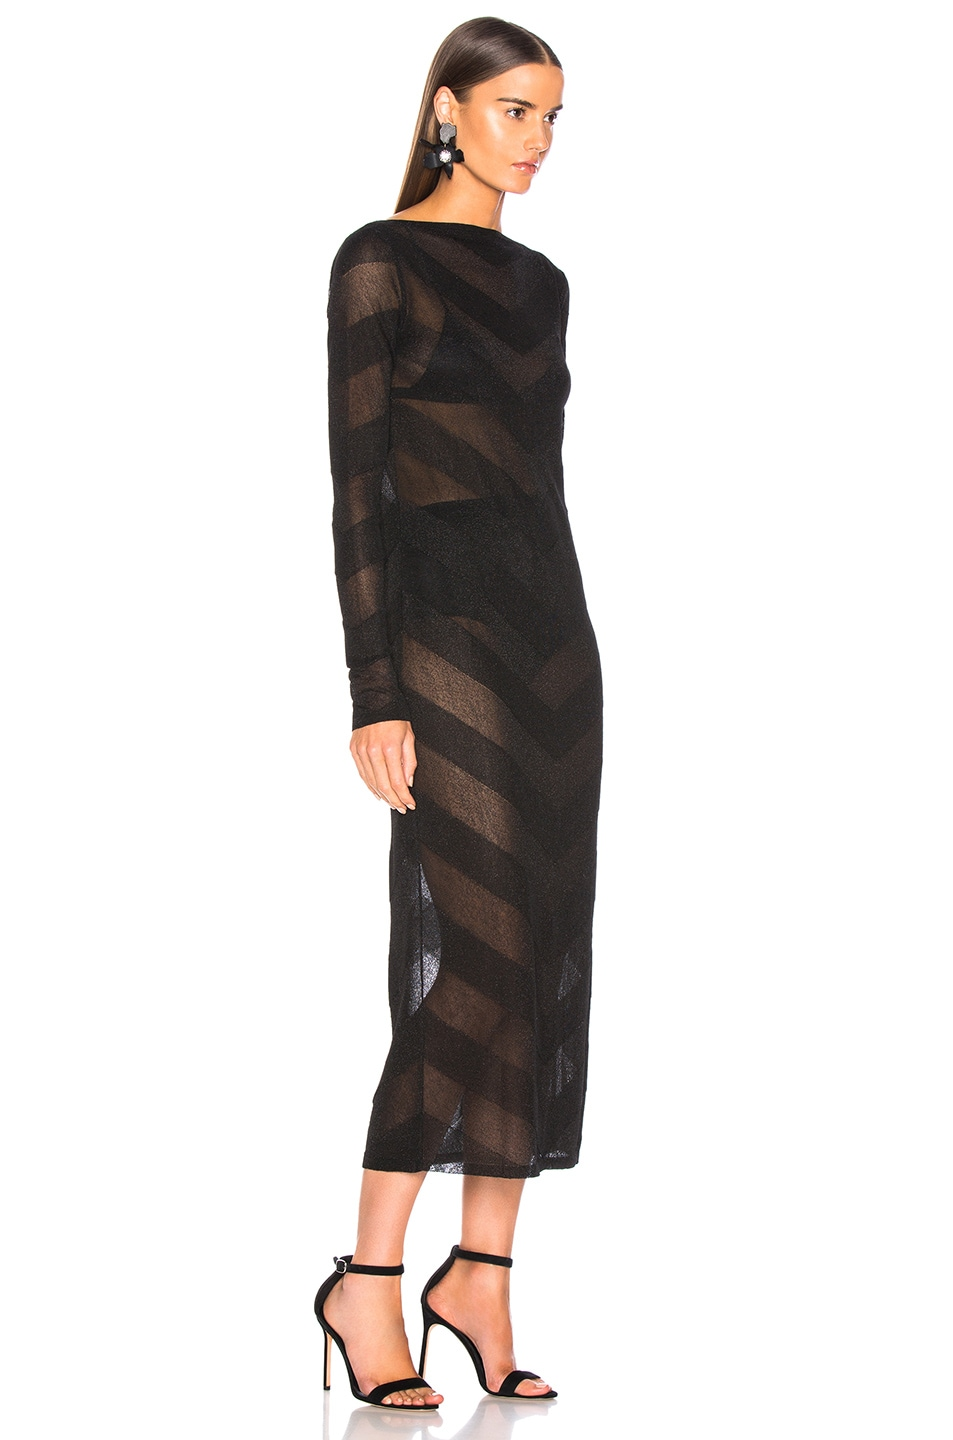 Image 3 of Zeynep Arcay for FWRD Knit V Dress in Black & Black